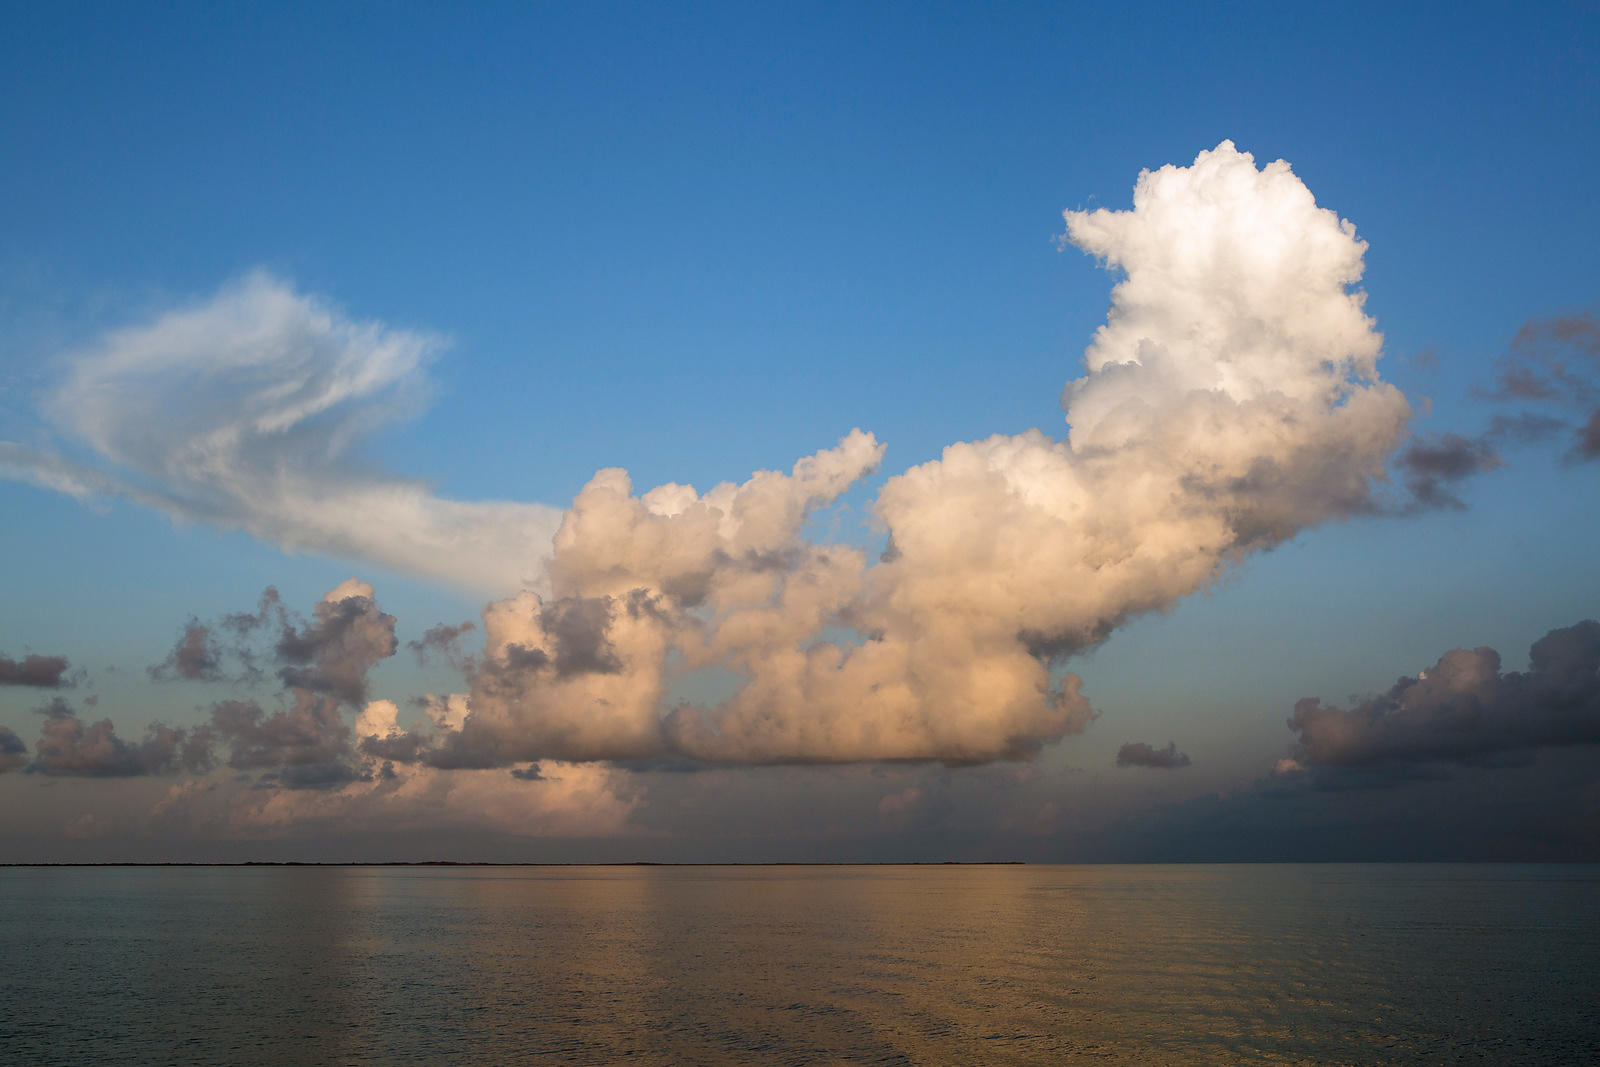 Nuages au dessus d'une mer calme à l'aube et ilot appelé Cayo, Cuba / Clouds above a calm sea at dawn and island called Cayo,...